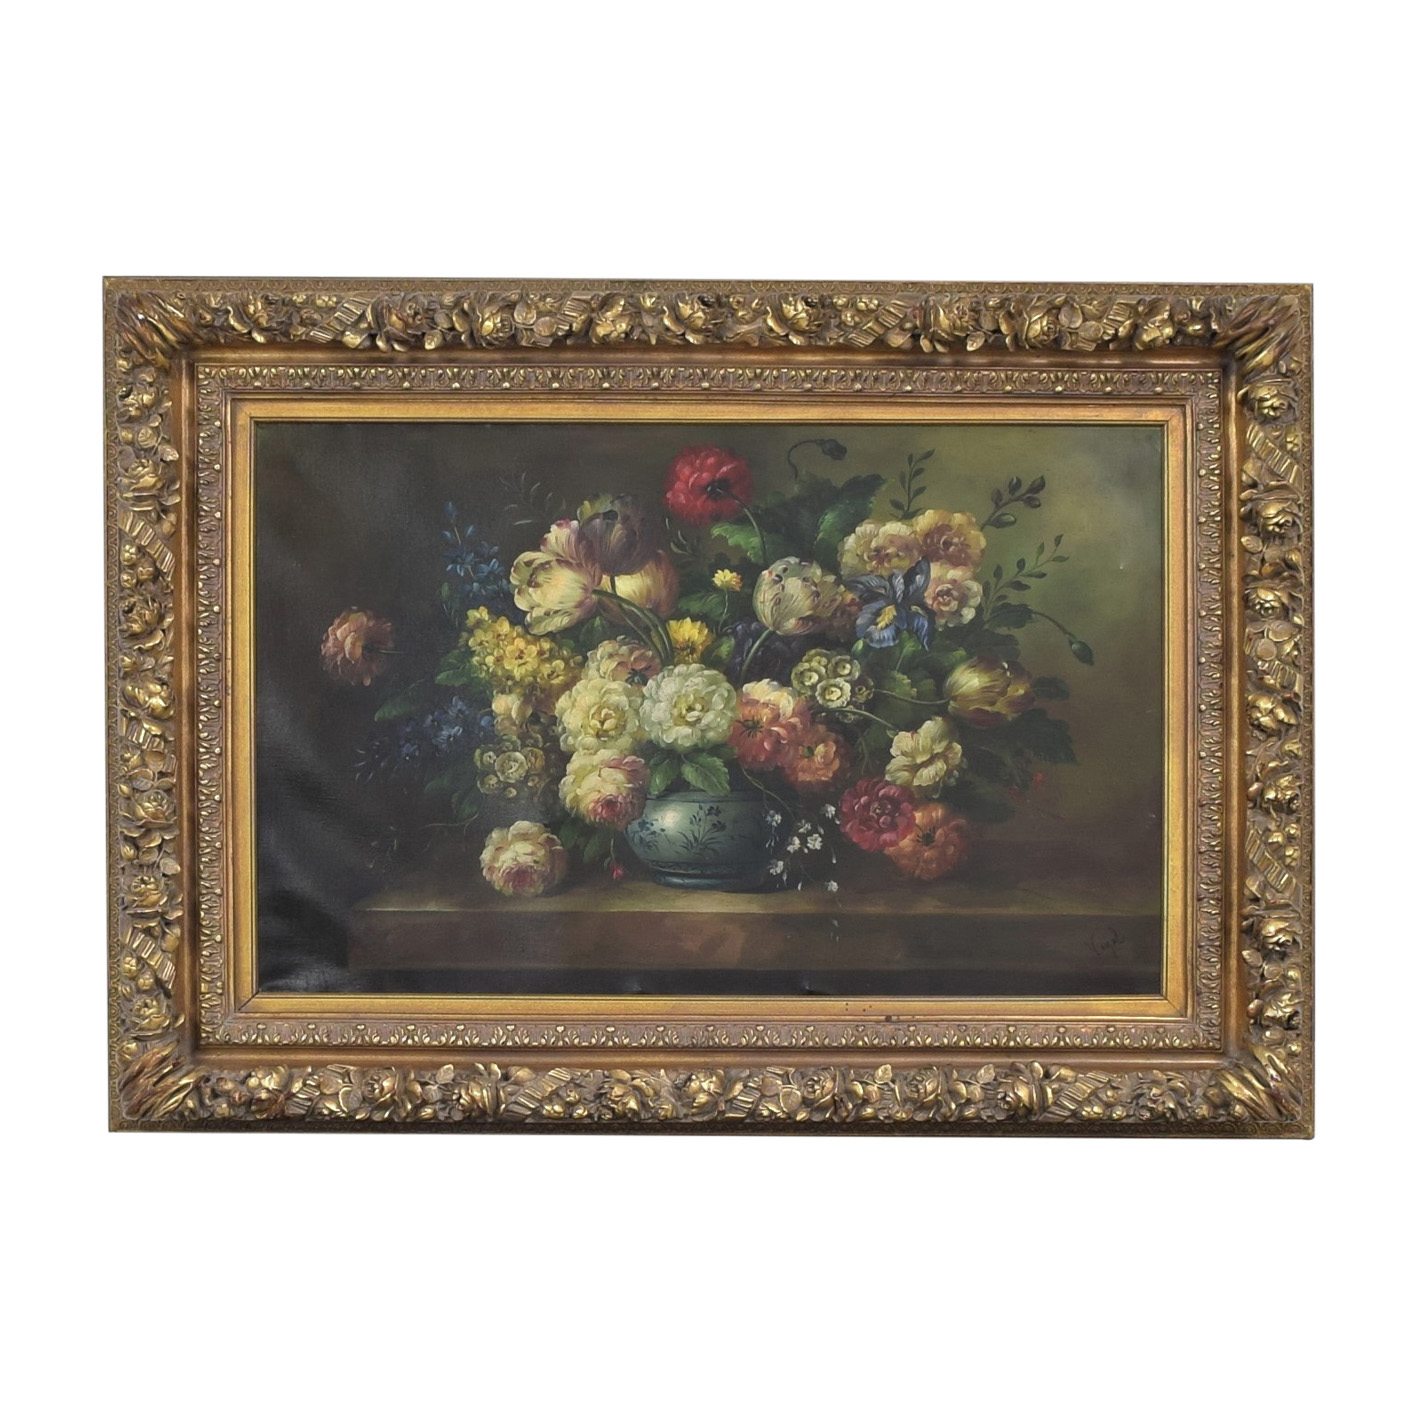 Floral Framed Wall Art for sale